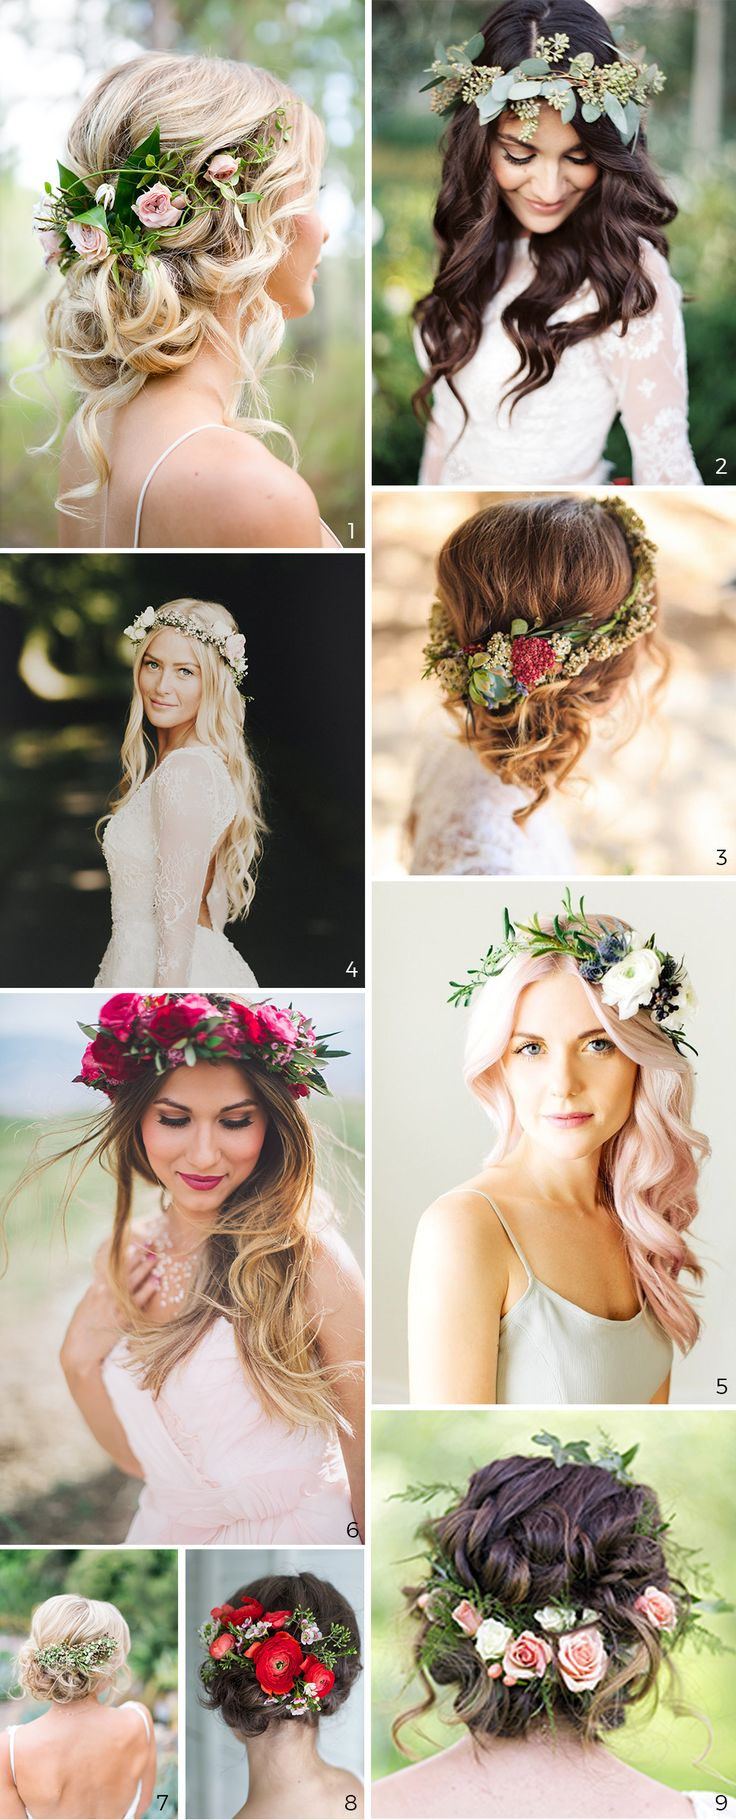 Wedding Hairstyles: 5 Unavoidable Trends. 9 photos of bridal hairstyles with flowers.